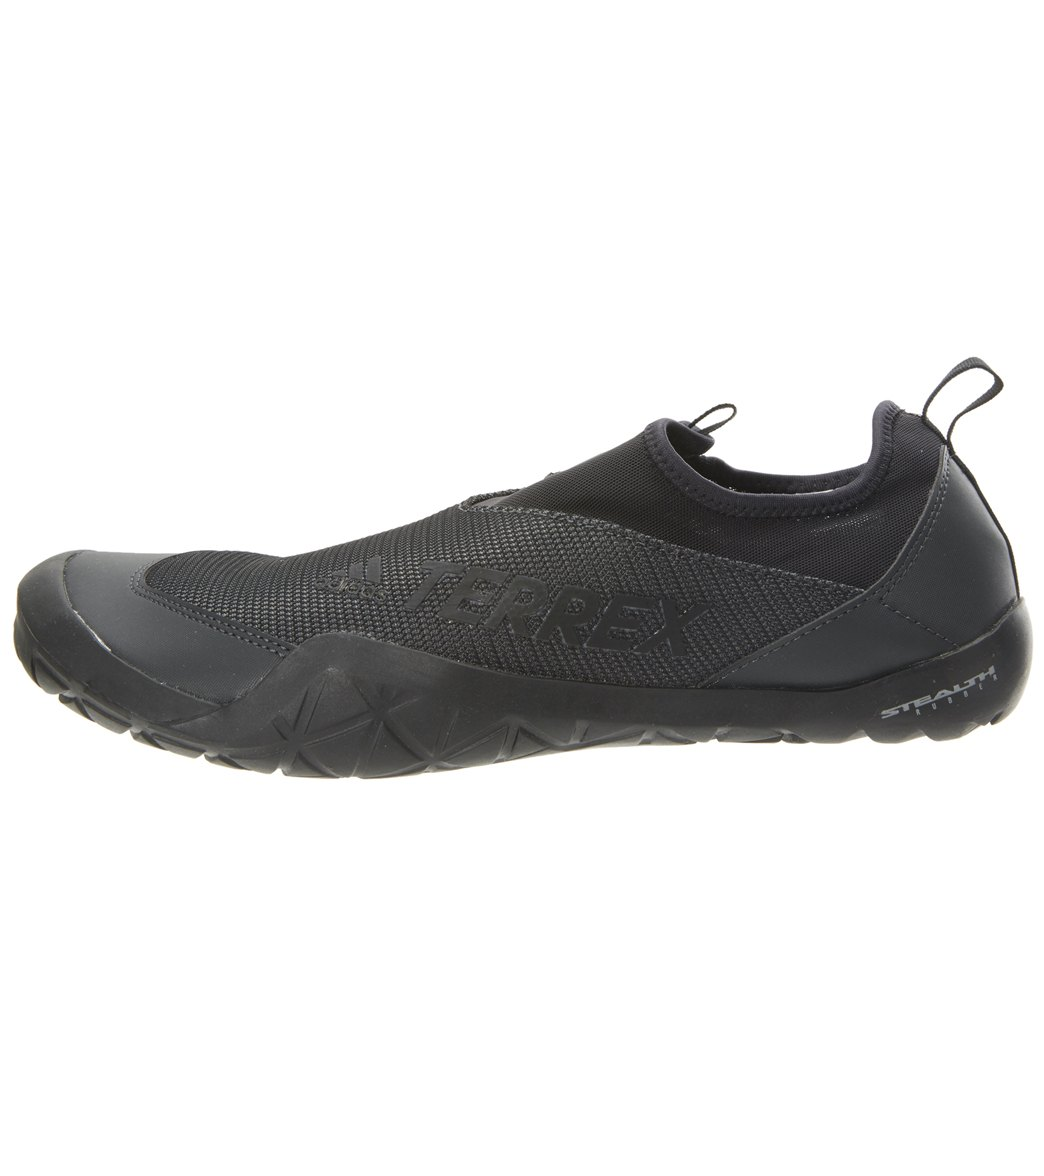 Adidas Men s Climacool Jawpaw Slip-On Water Shoe at SwimOutlet.com ... 77612781b